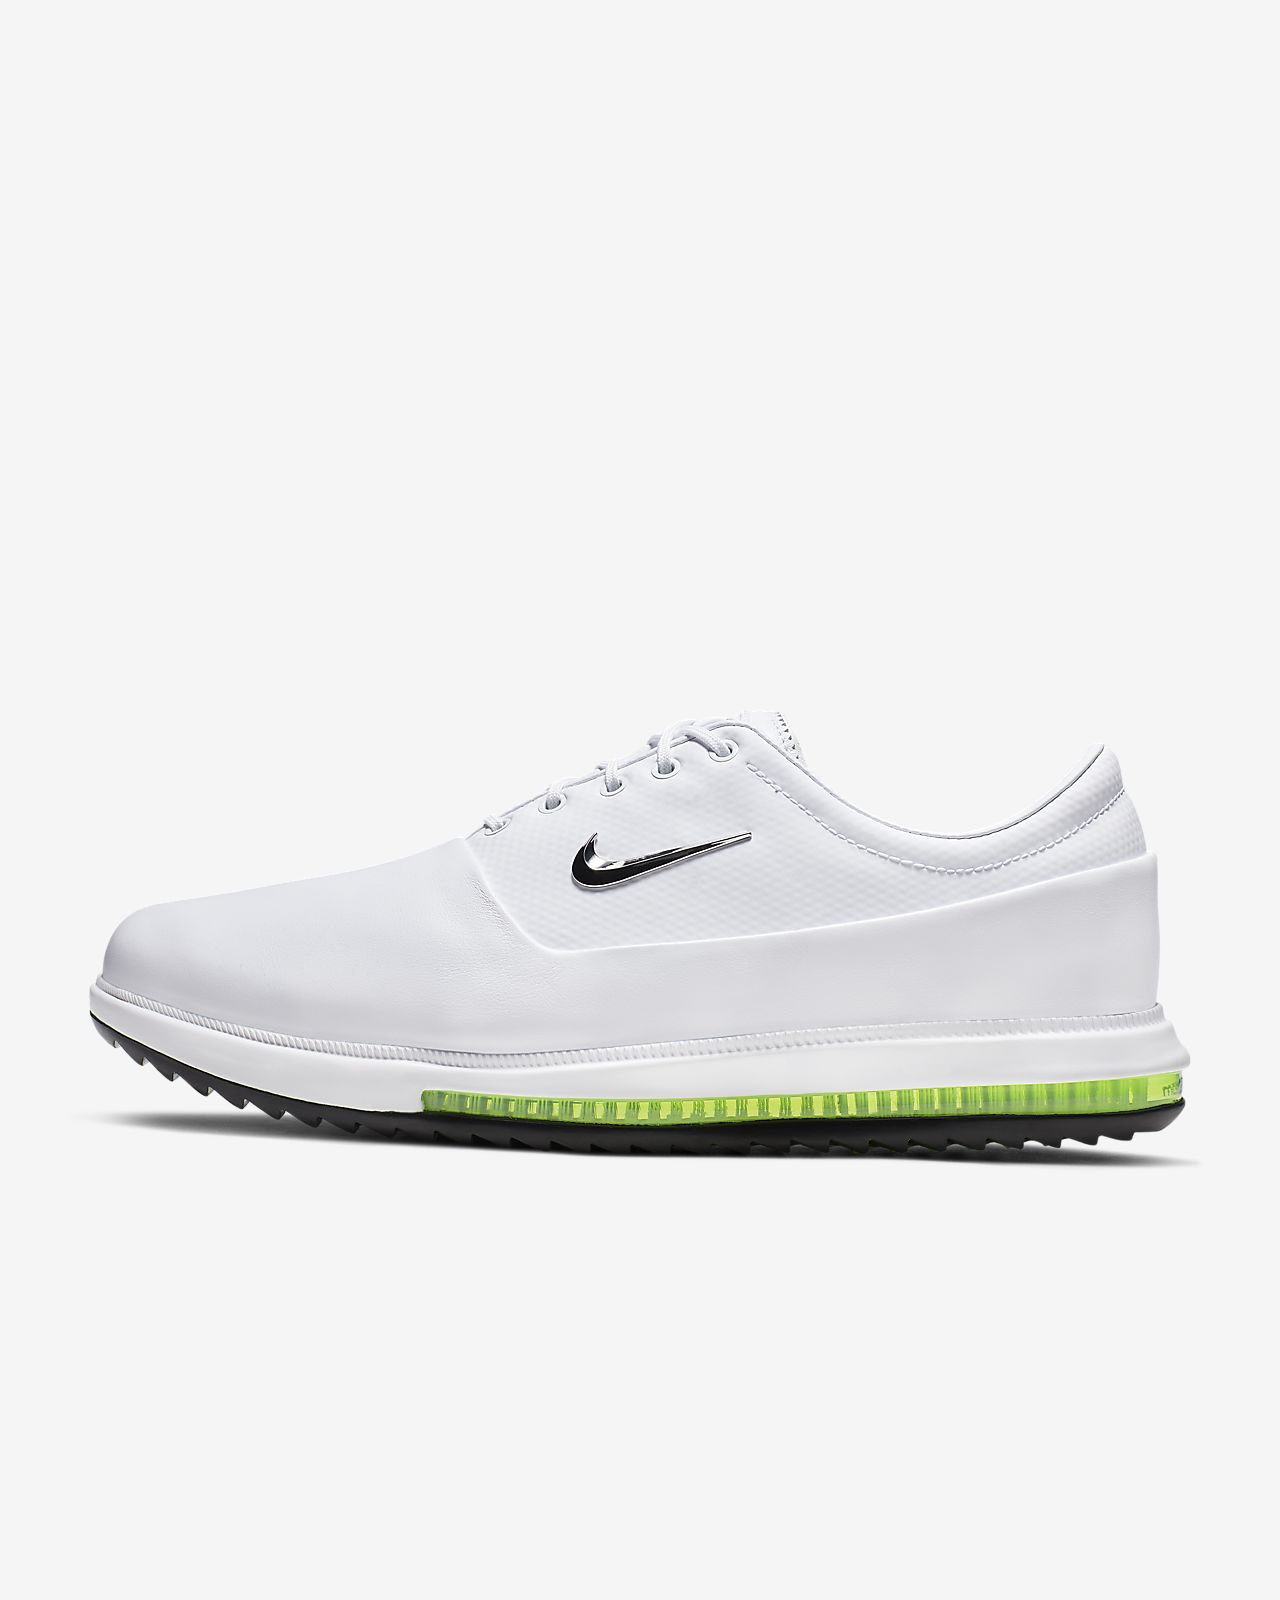 Nike Air Zoom Victory Tour On/Off Course Men's Golf Shoe